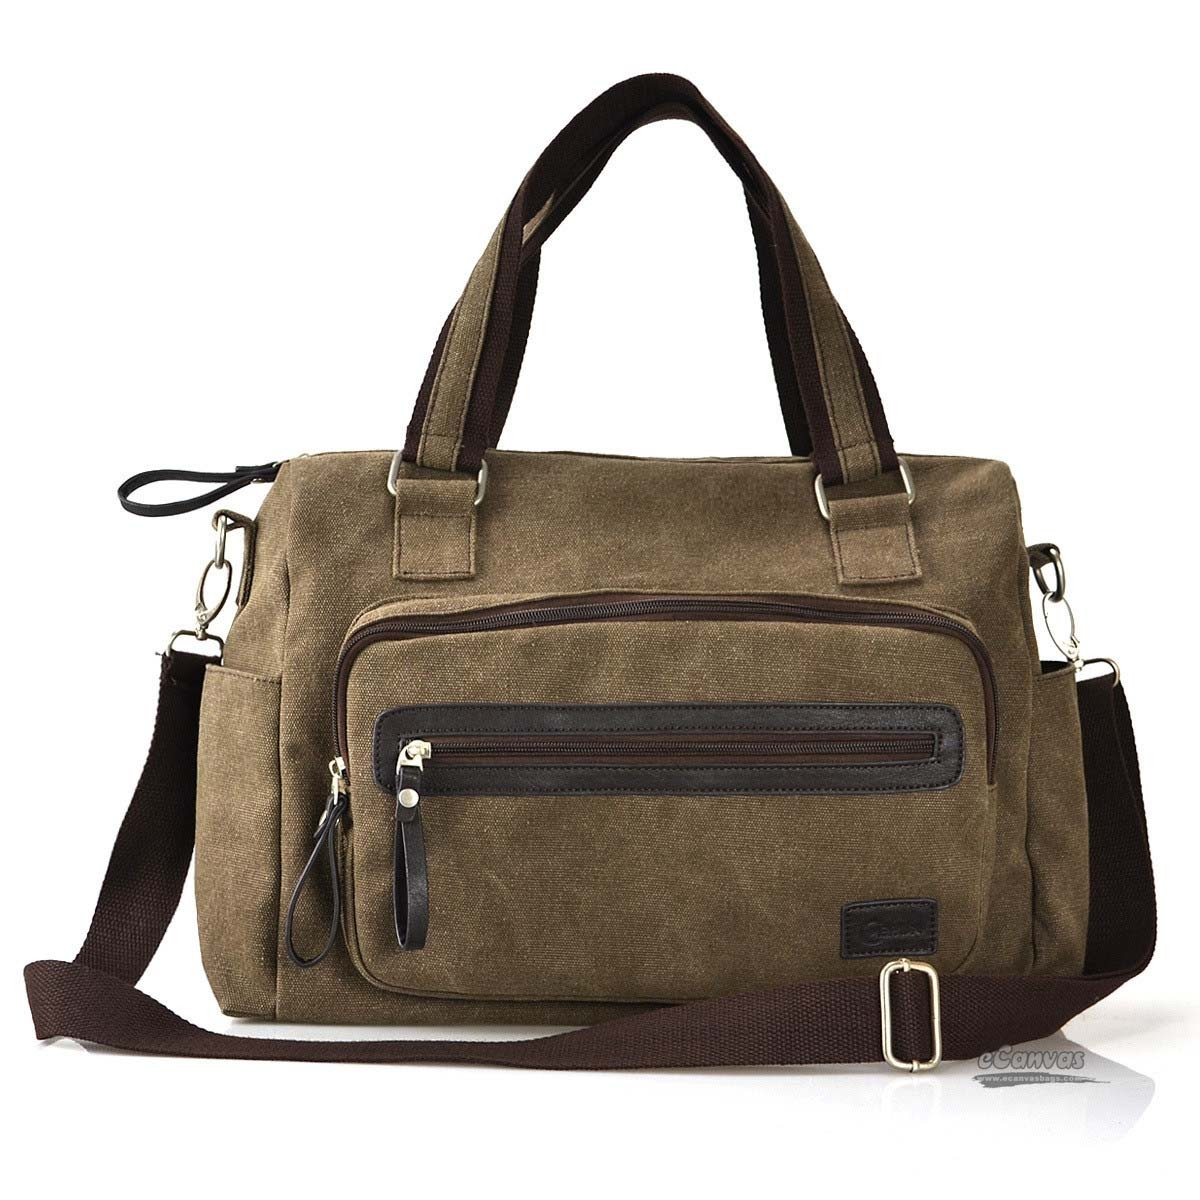 canvas-shoulder-bags-for-women-13-inch-laptop-bag-coffee-black-.jpg